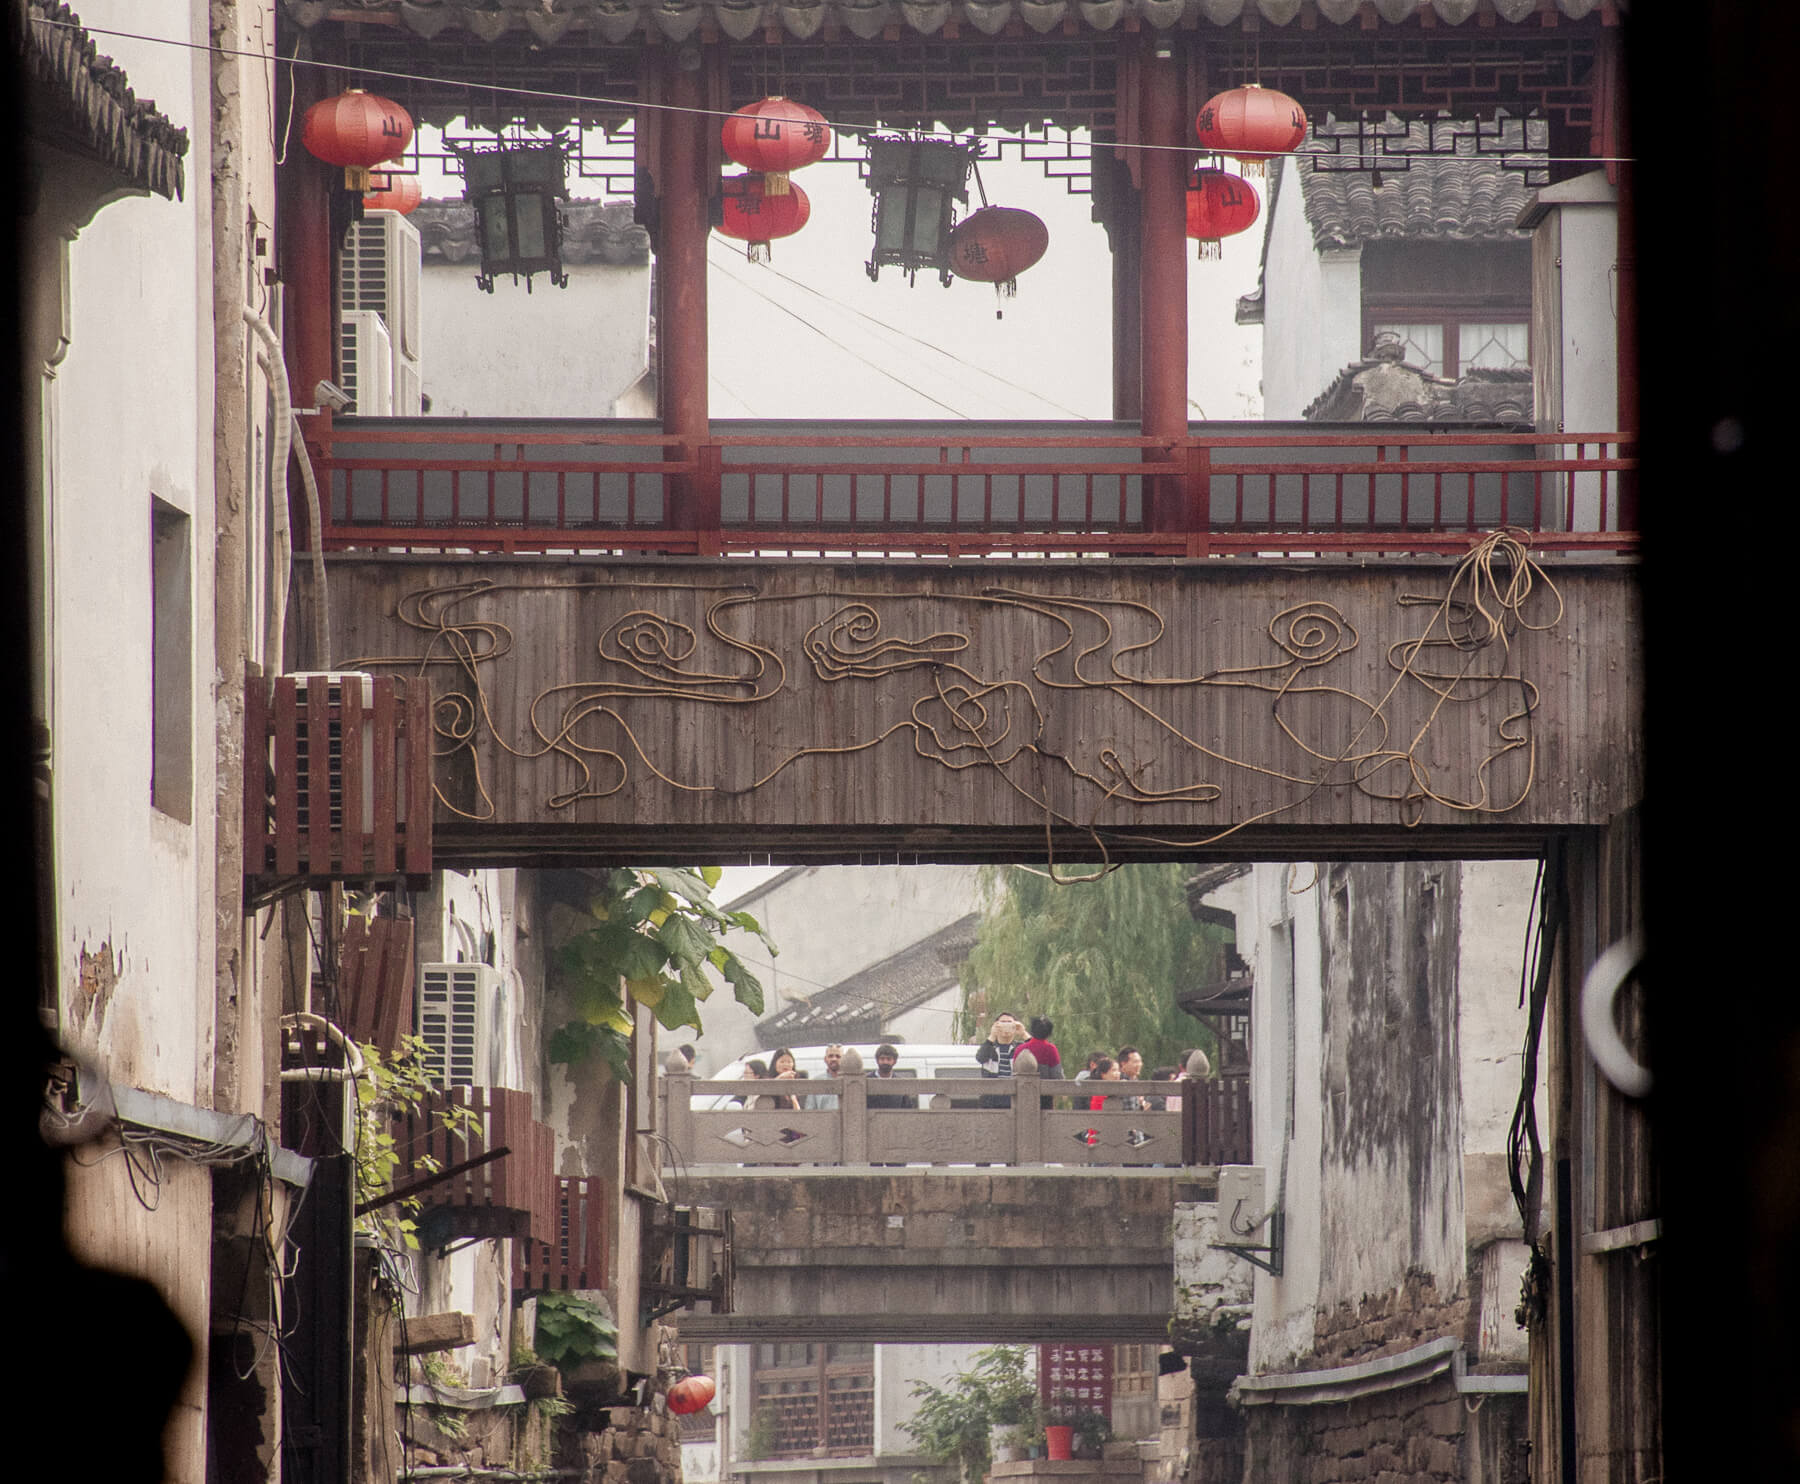 Looking down the Grand Canals of Suzhou under all the foot bridges